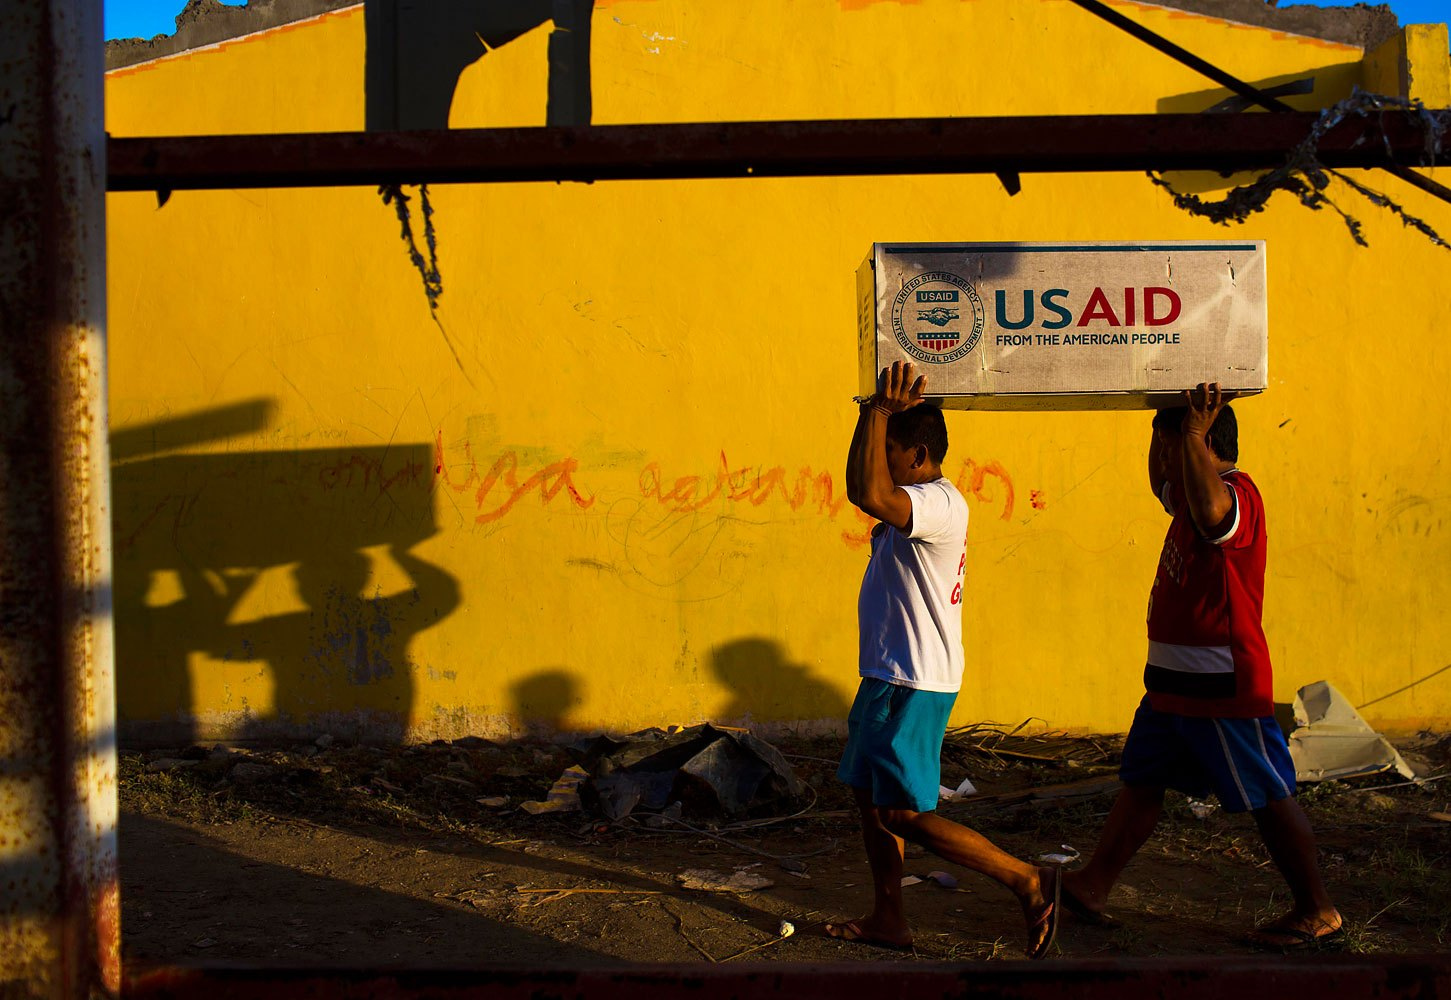 Typhoon Haiyan survivors help carry USAID donated food after a U.S. military helicopter unloaded it in the destroyed town of Guiuan, Philippines on November 14, 2013.